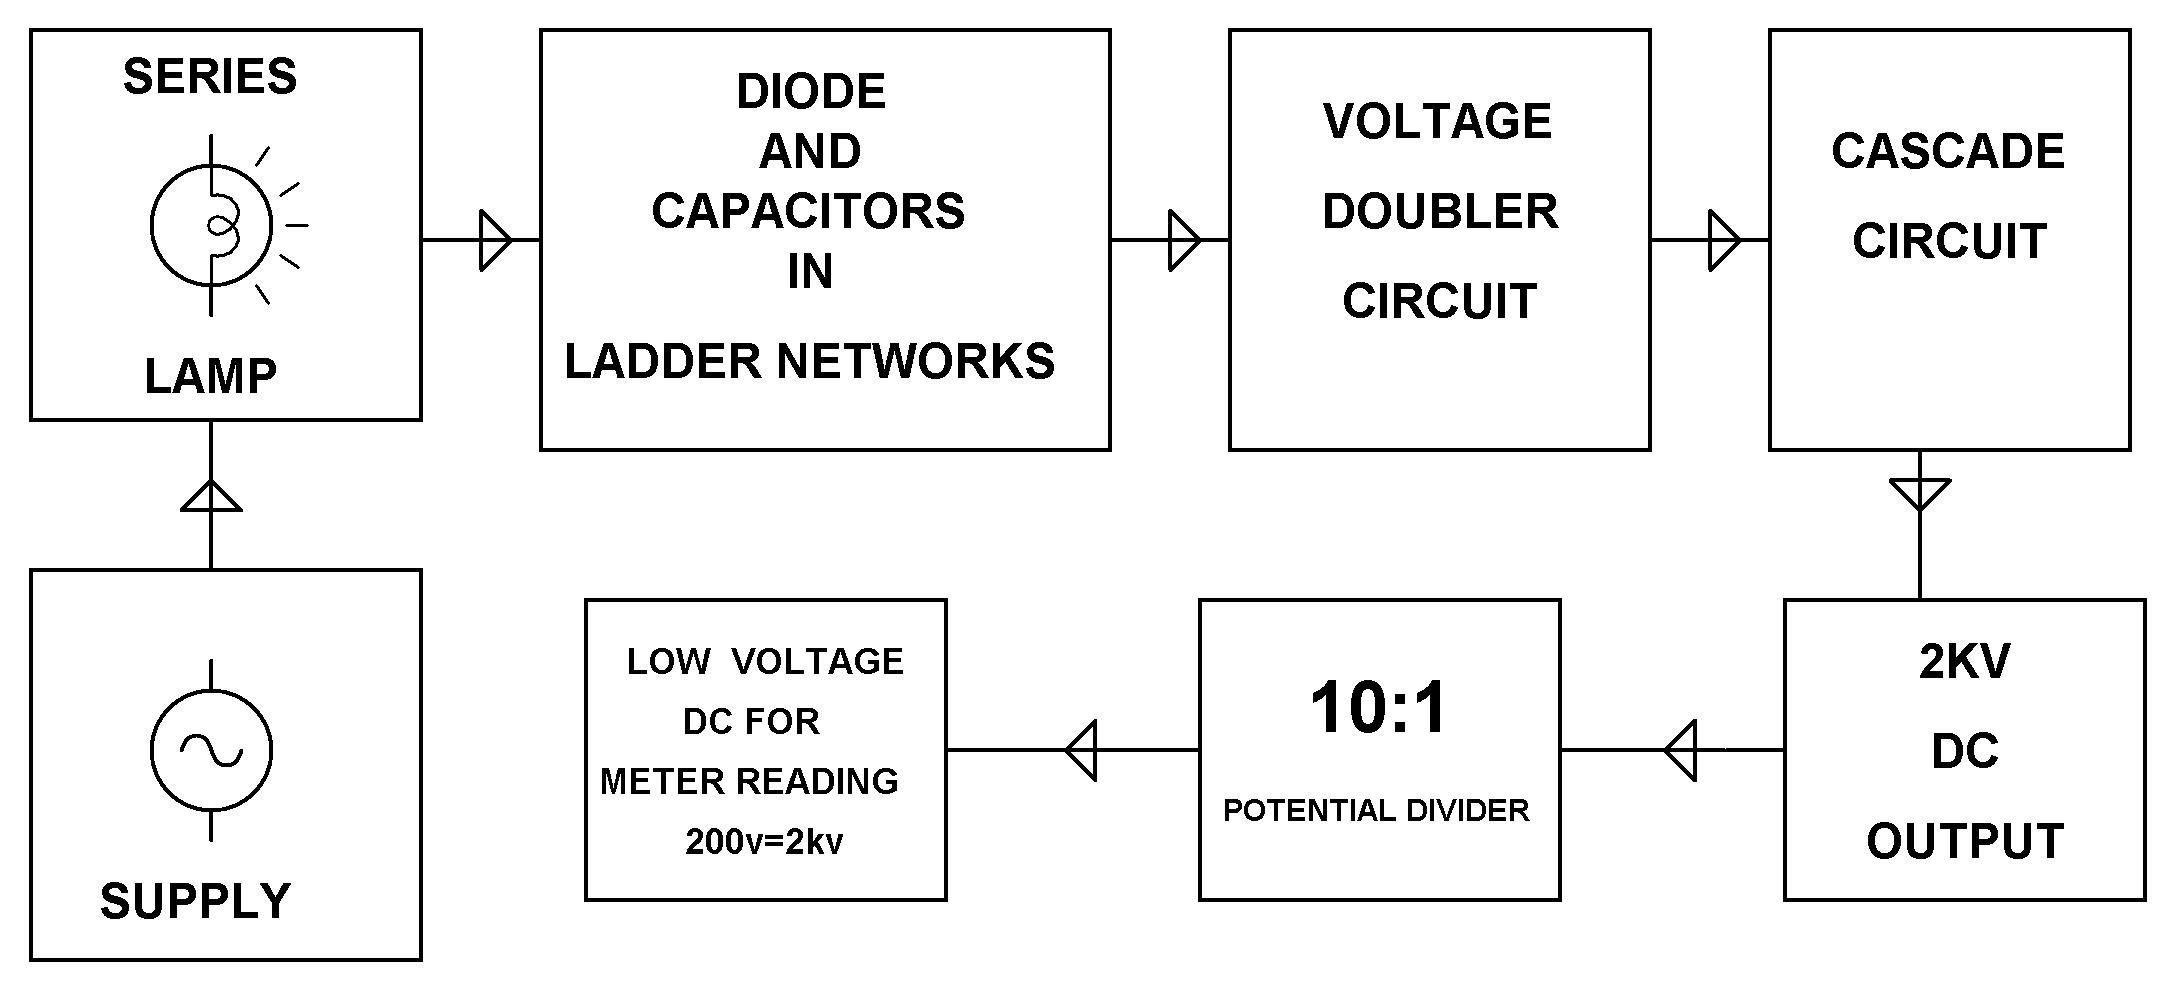 High Voltage Dc From Ac By Using Multiplier Circuit Principle Up To 2kv Diode And Capacitors